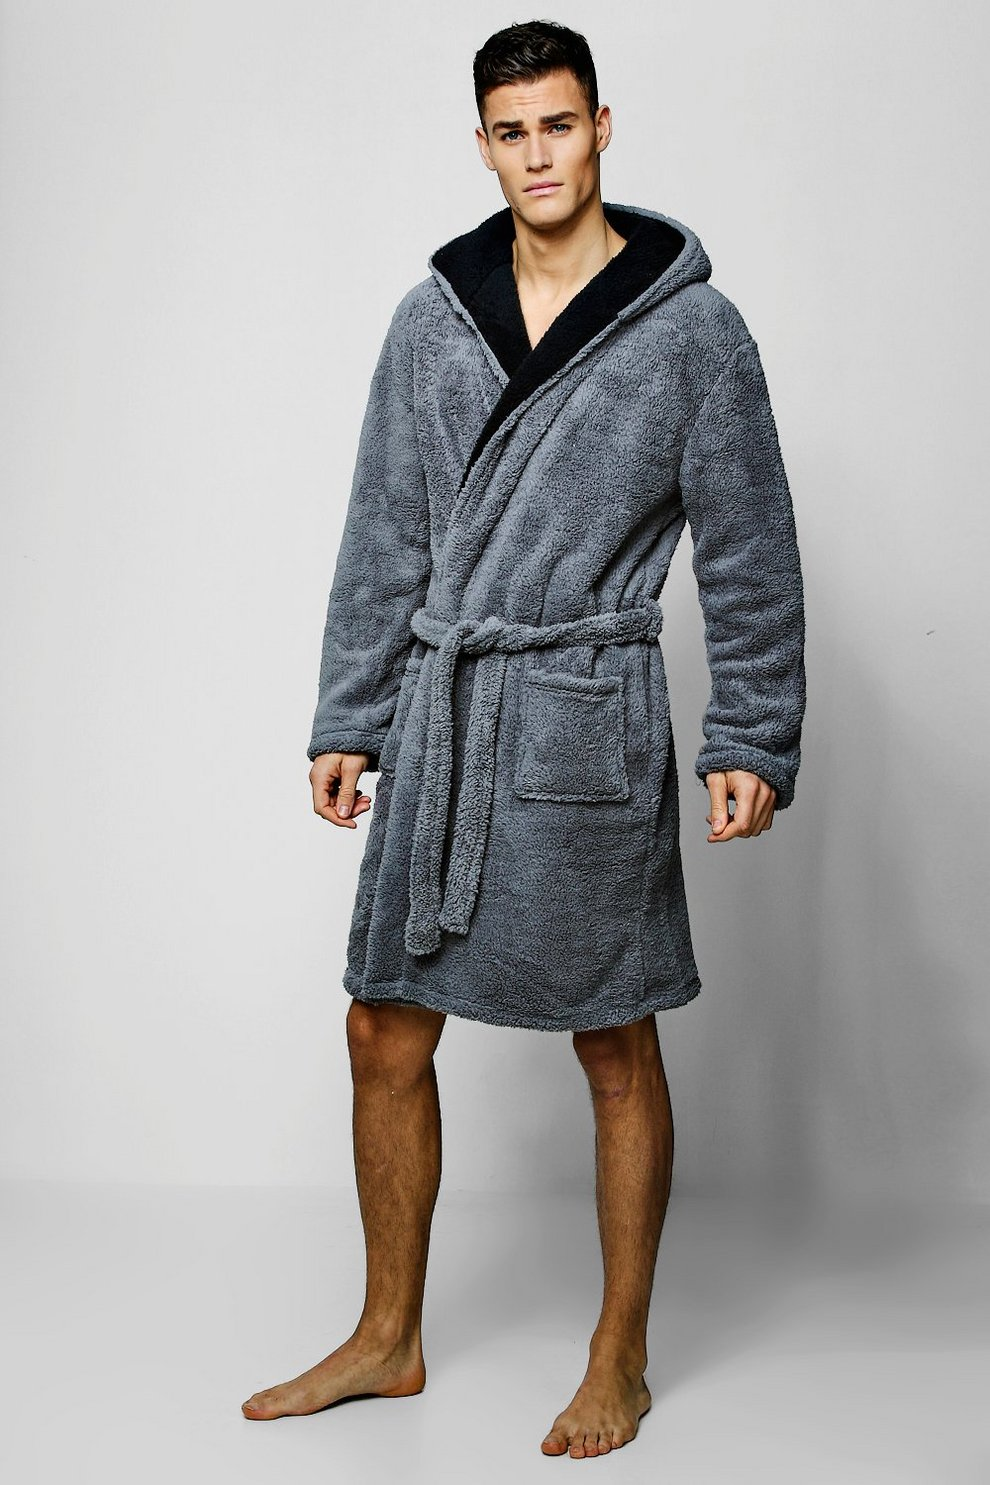 a37c361be224 Mens Charcoal Mens Shaggy Fleece Robe With Contrast Lining